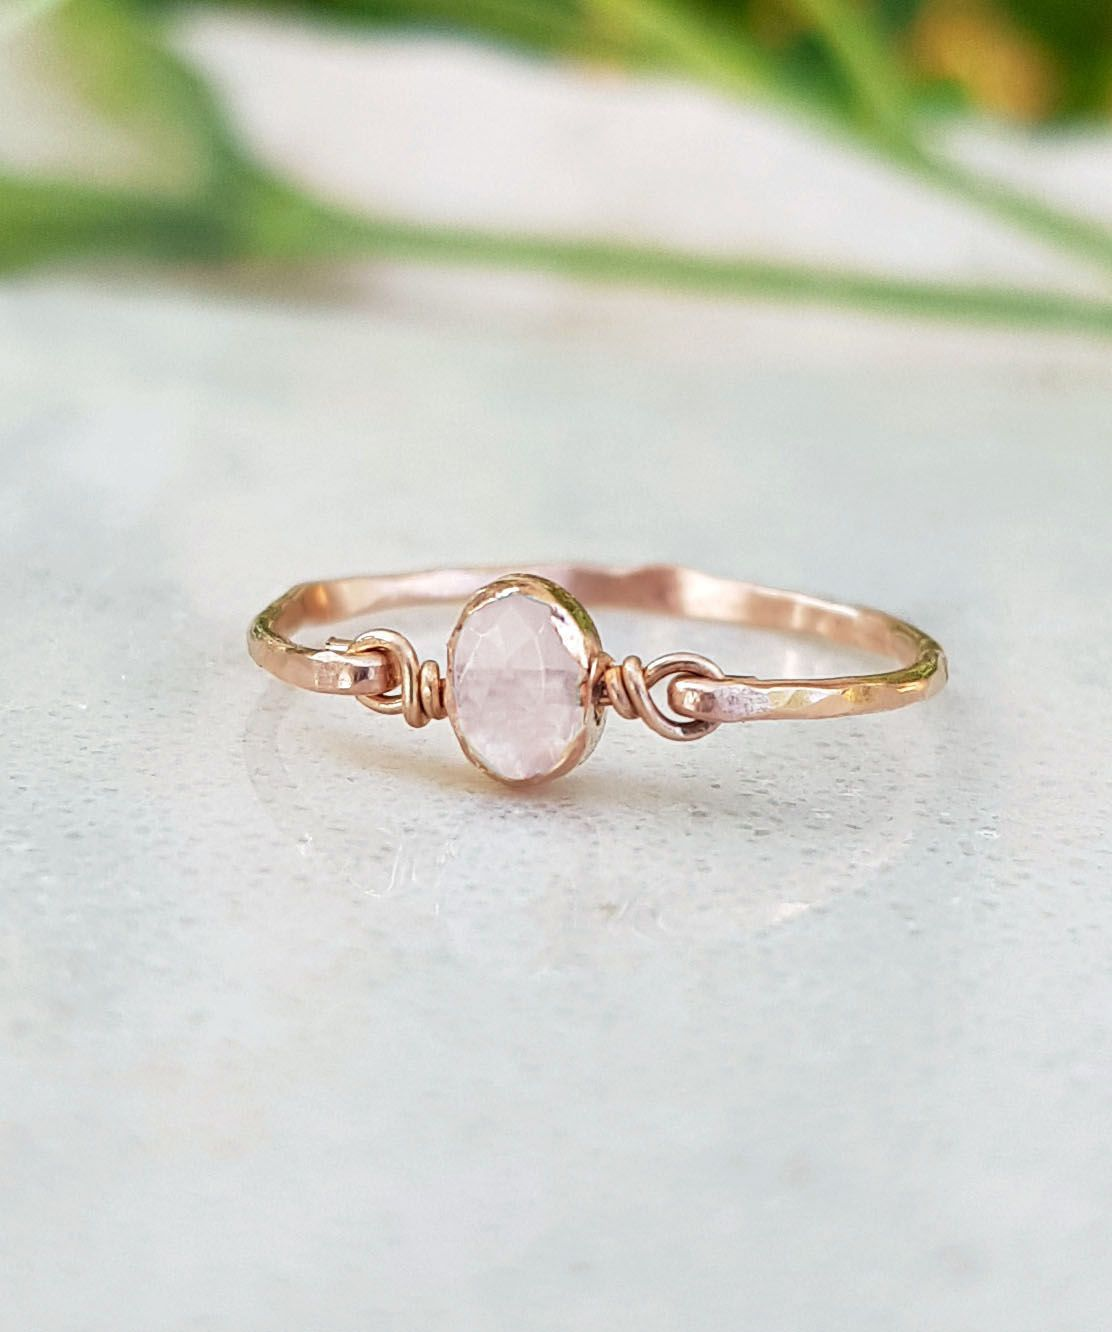 6x12 mm Marquise Pink Opal Copper Ring Statement Rings Pink Opal Gemstone Ring Valentine/'s Day Ring Women Rings Pink Opal Ring